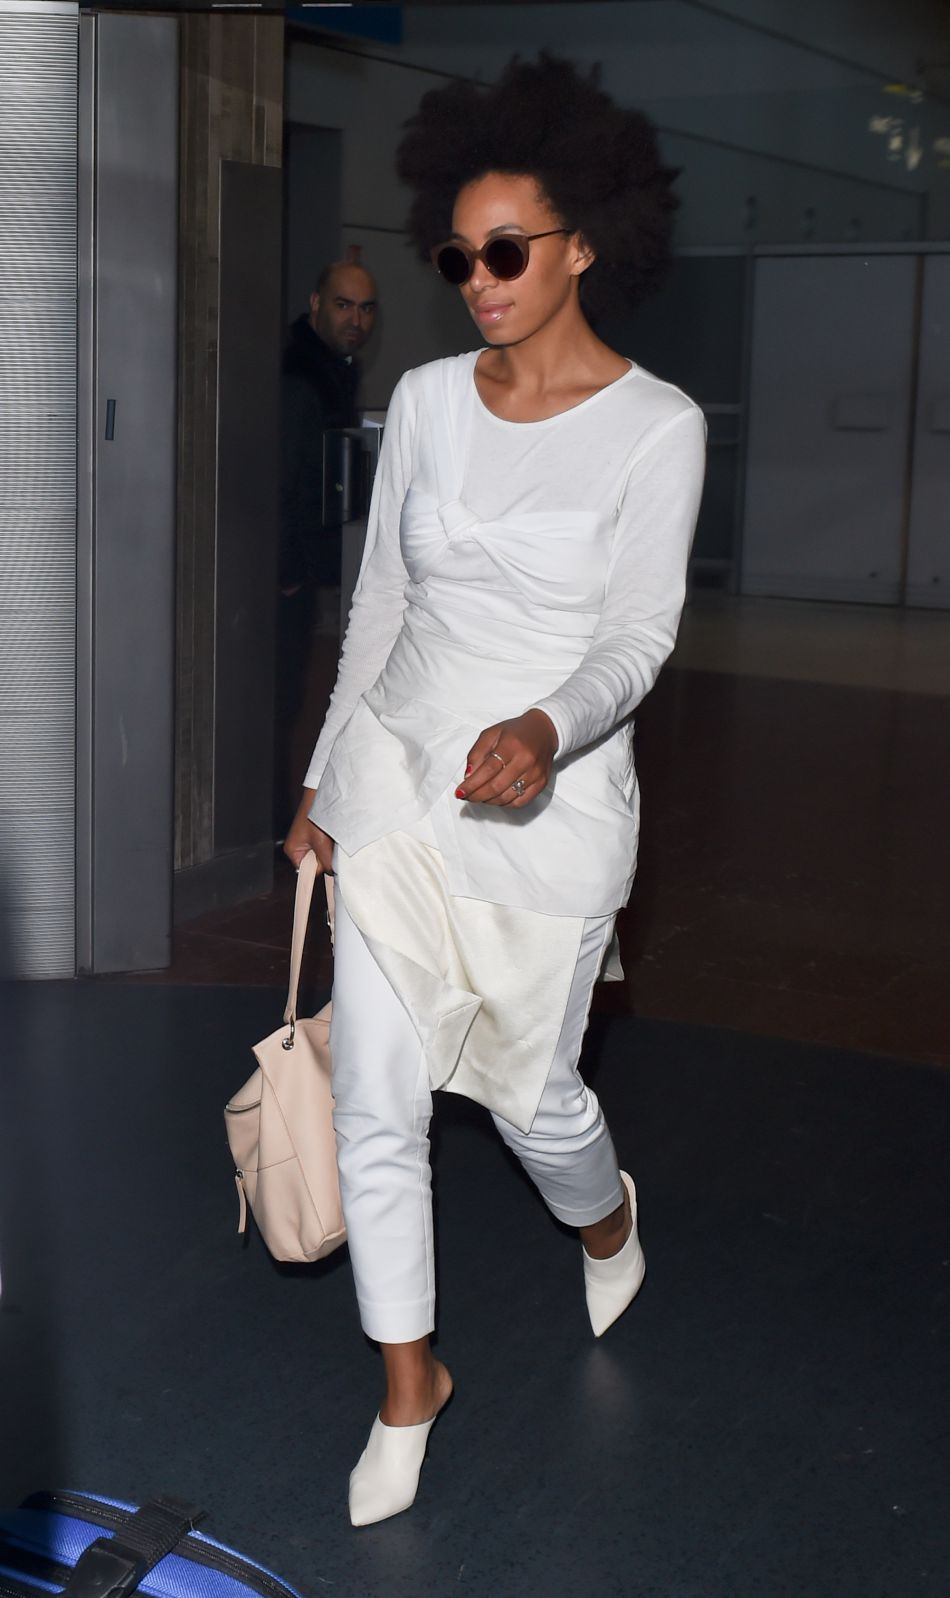 Solange Knowles à l'aéroport de New York.